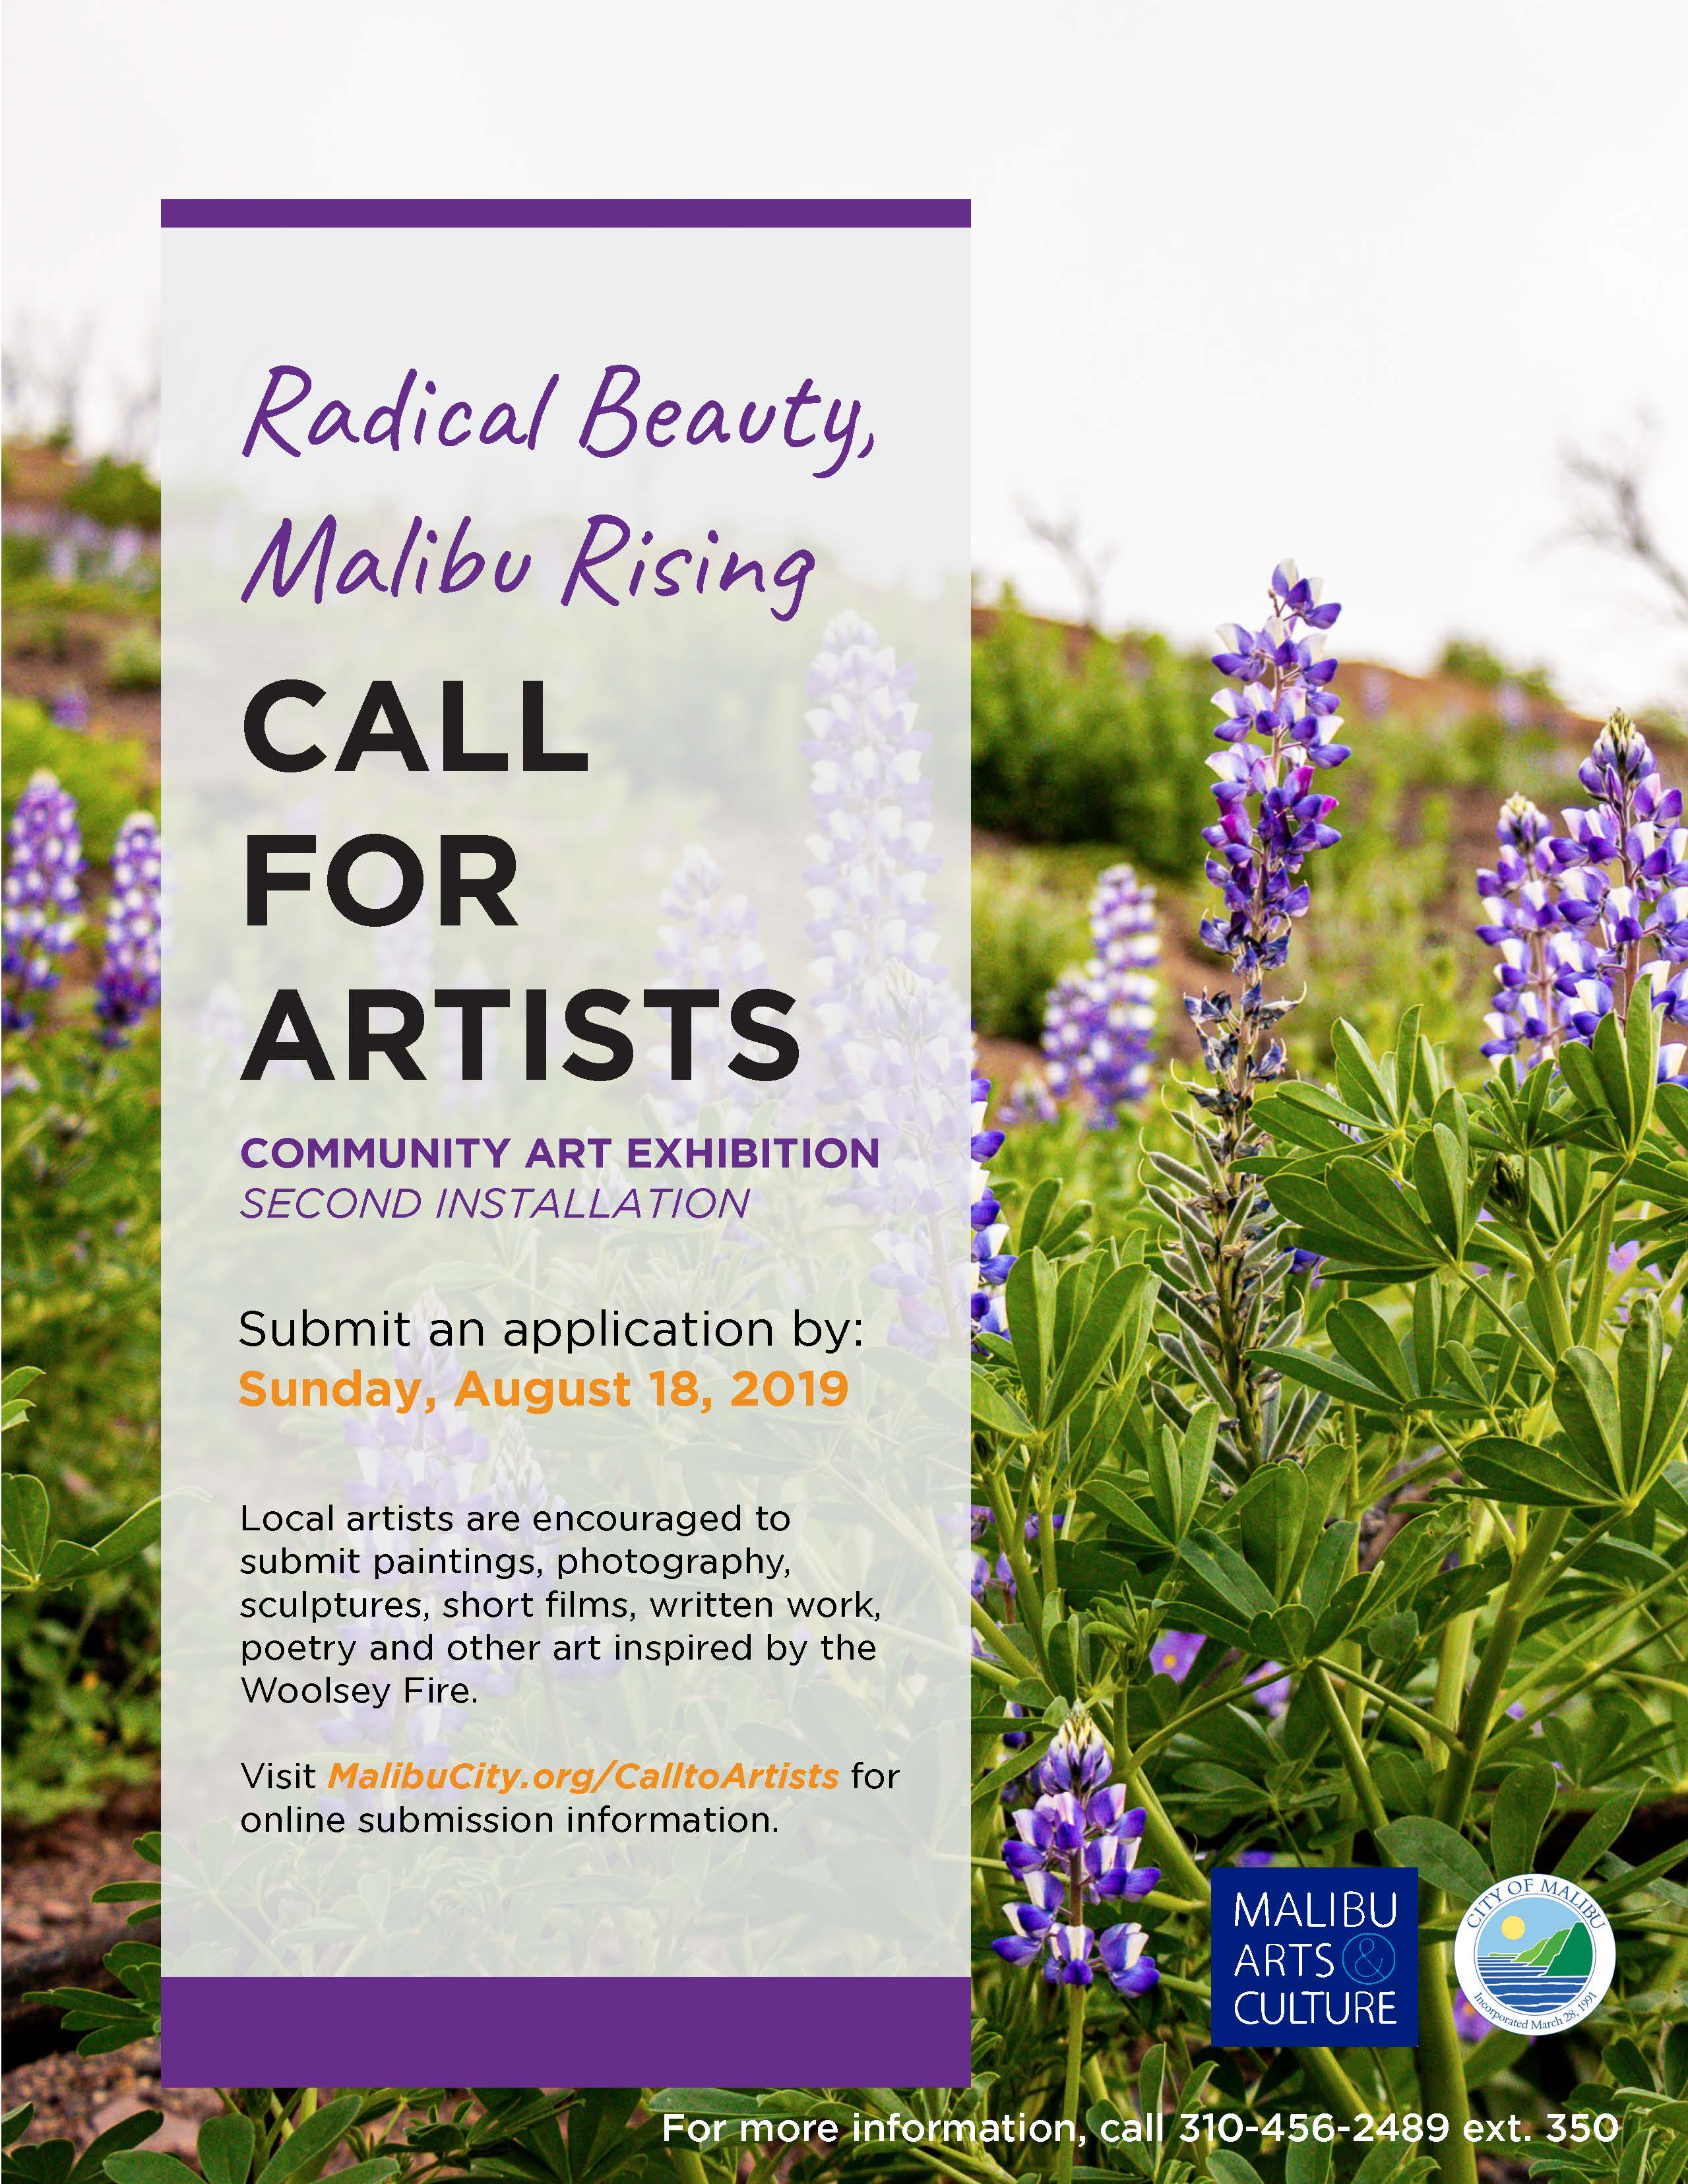 2019 Call For Artists Radical Beauty Second Installation